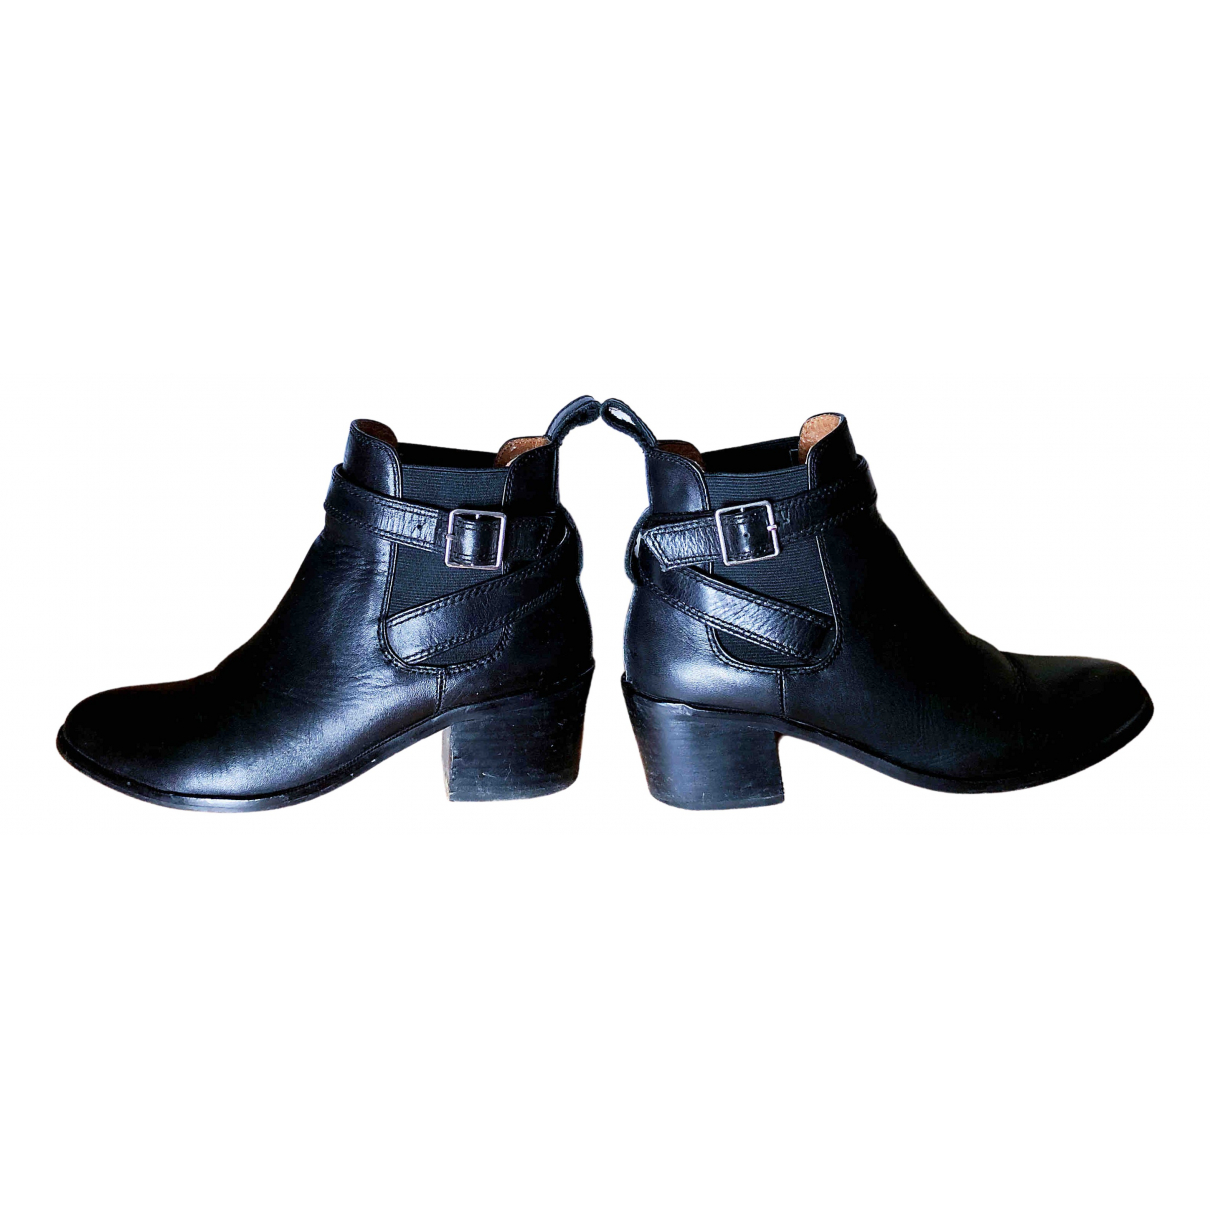 Bimba Y Lola \N Black Leather Boots for Women 36 EU